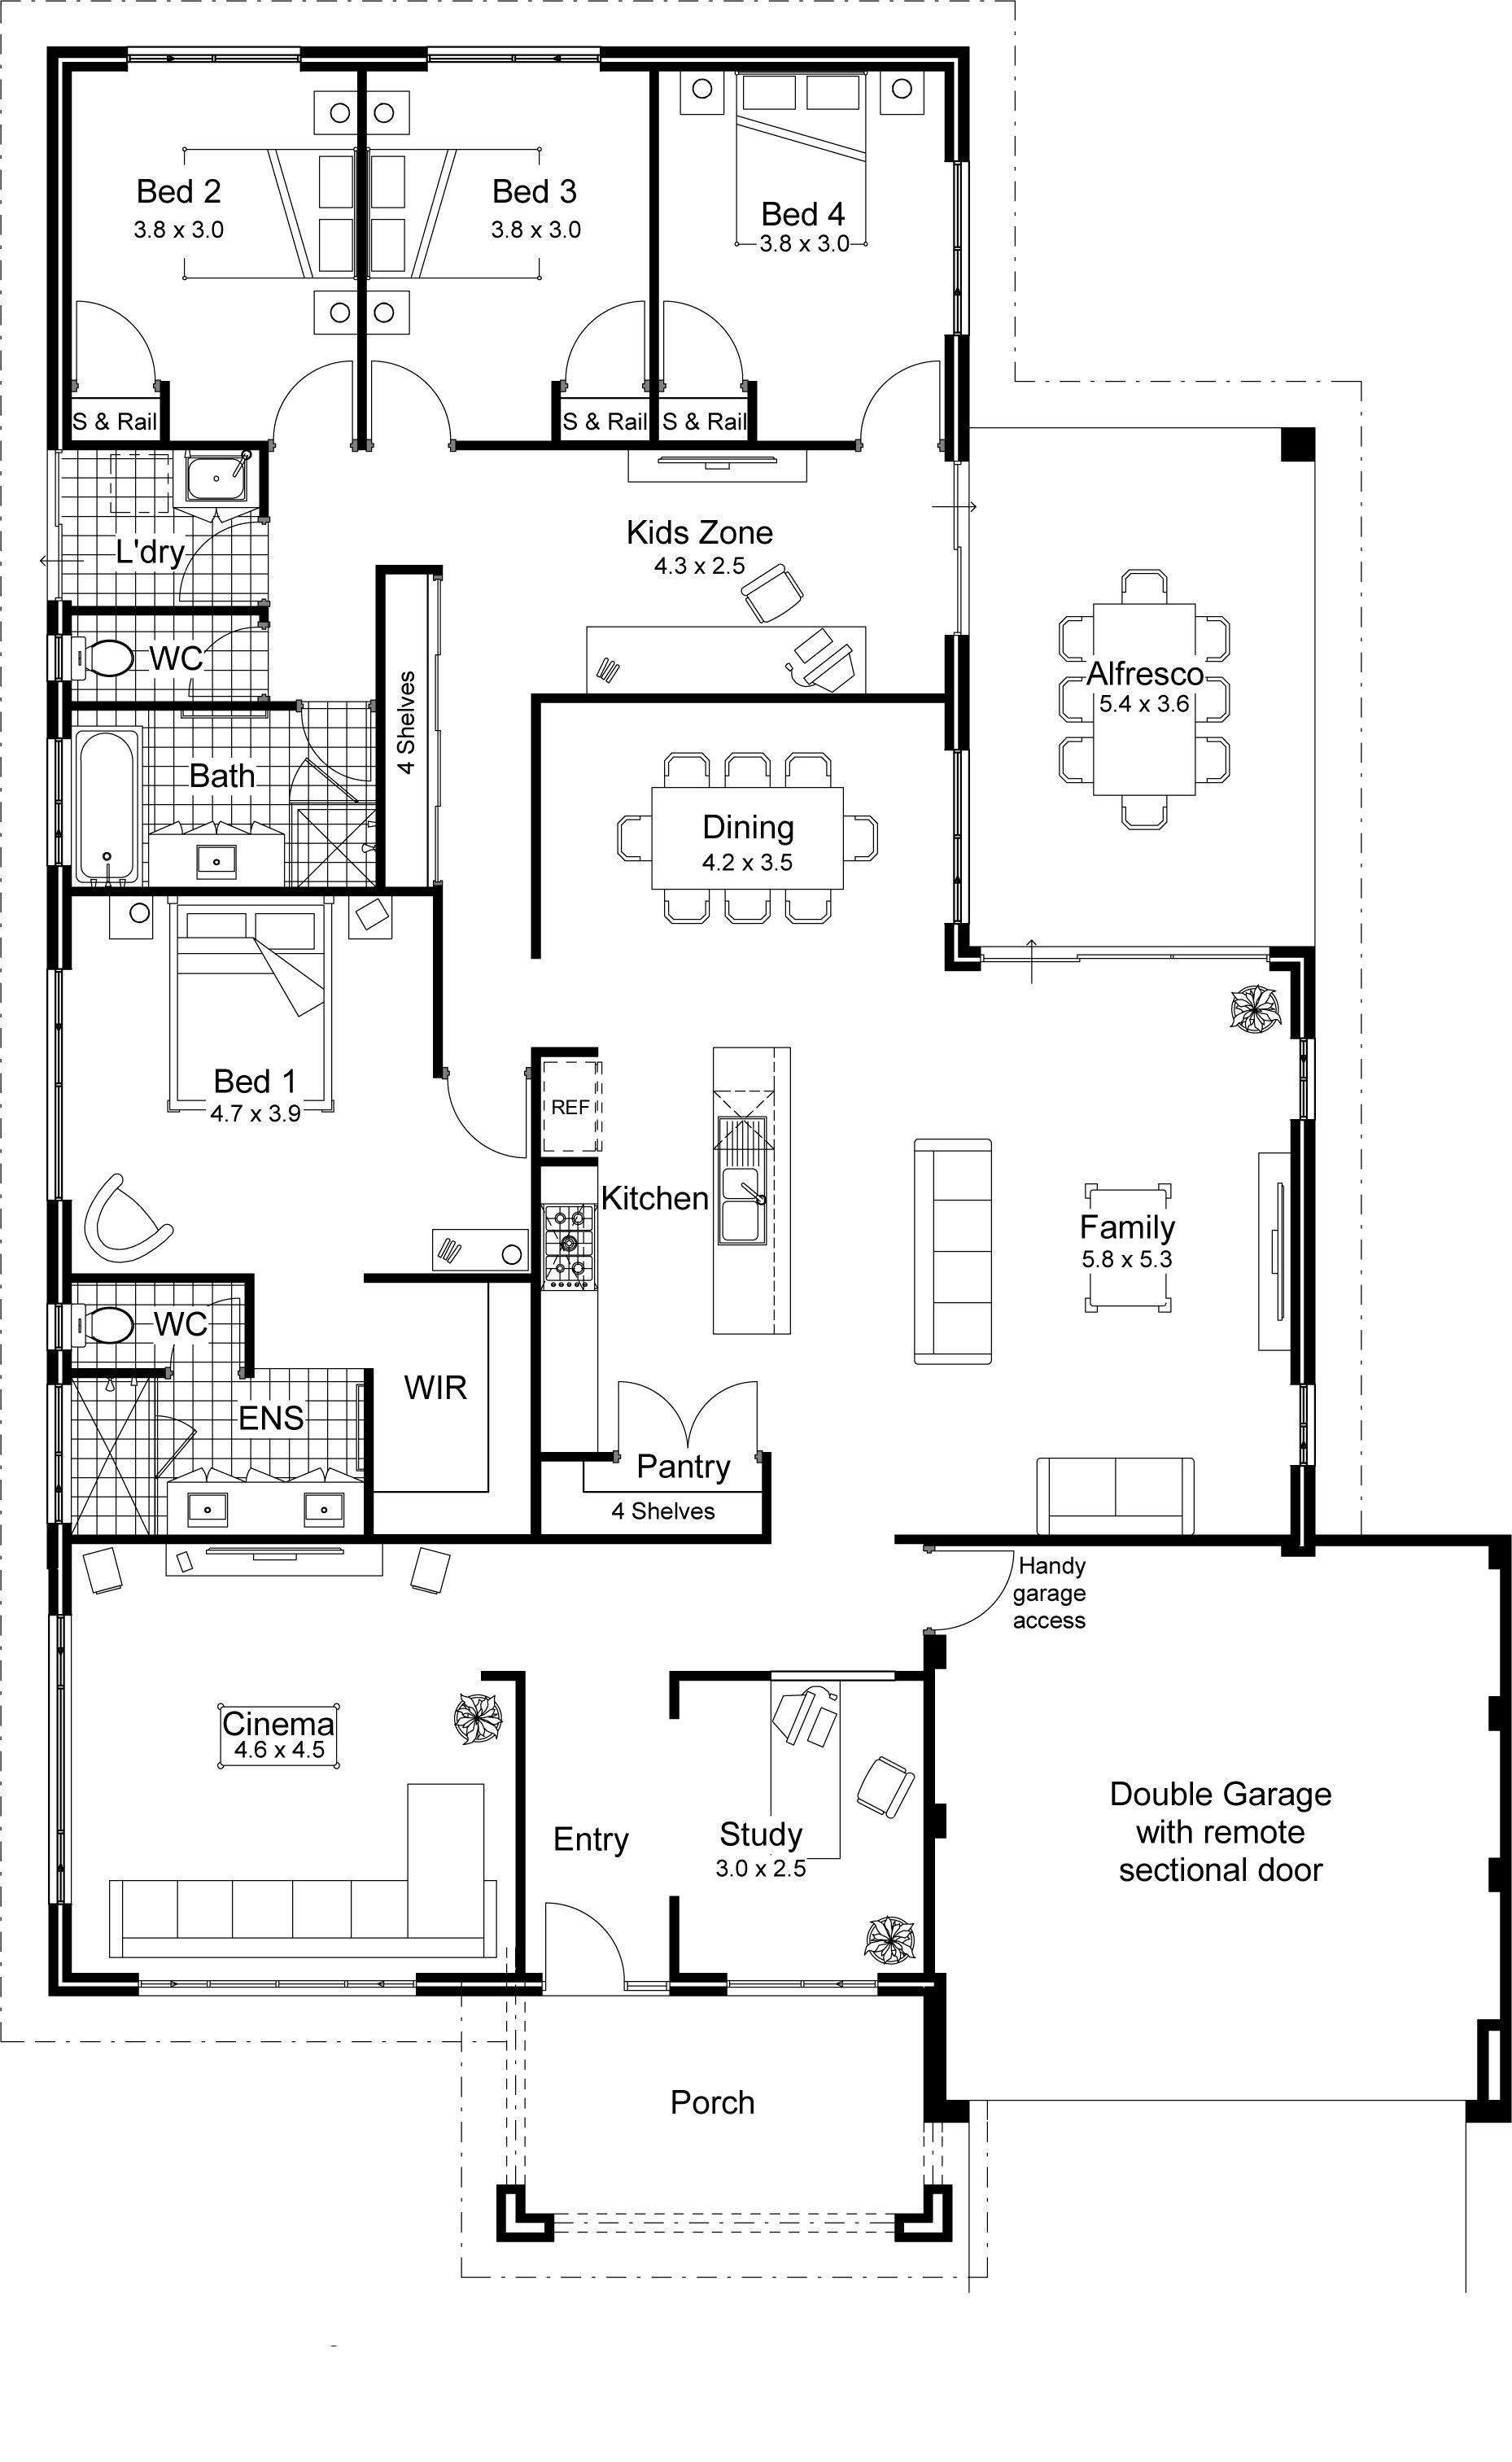 Pool House Plans Designs Lovely Plan Ideas Home Kits Cabin Plans Floor Plan Pool House